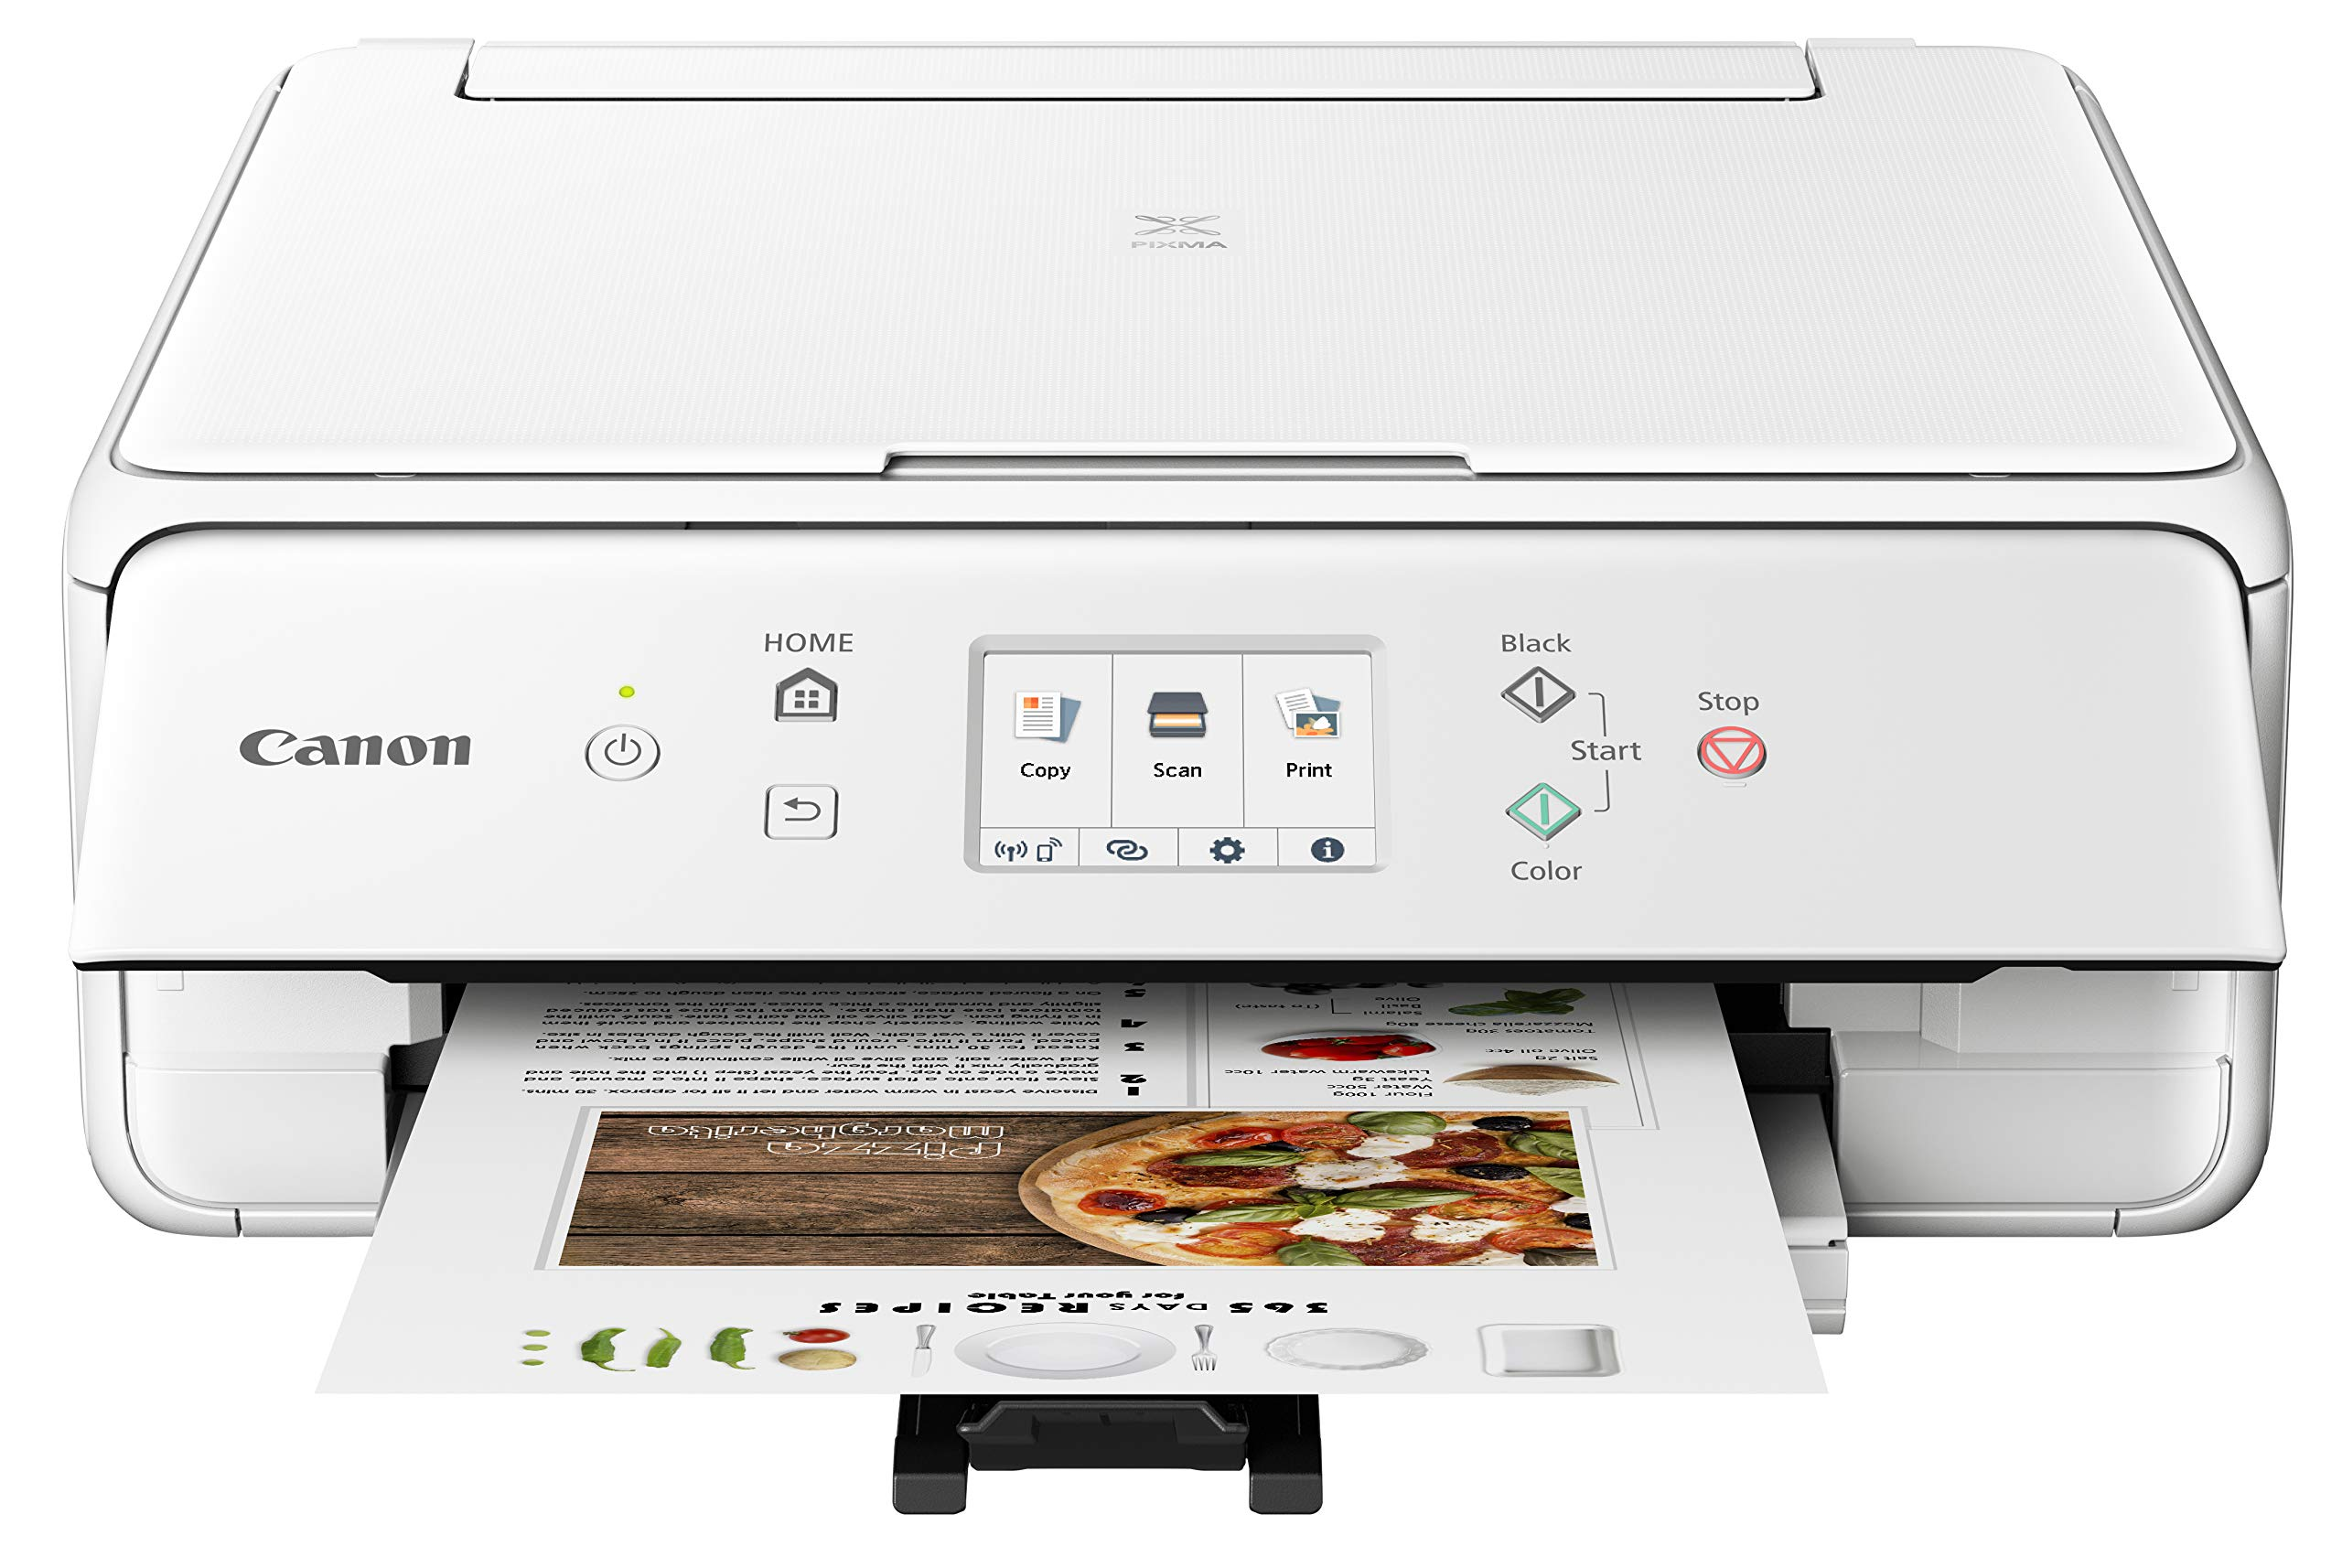 Canon PIXMA TS6220 Wireless All in One Printer with Mobile Printing, White by Canon (Image #1)